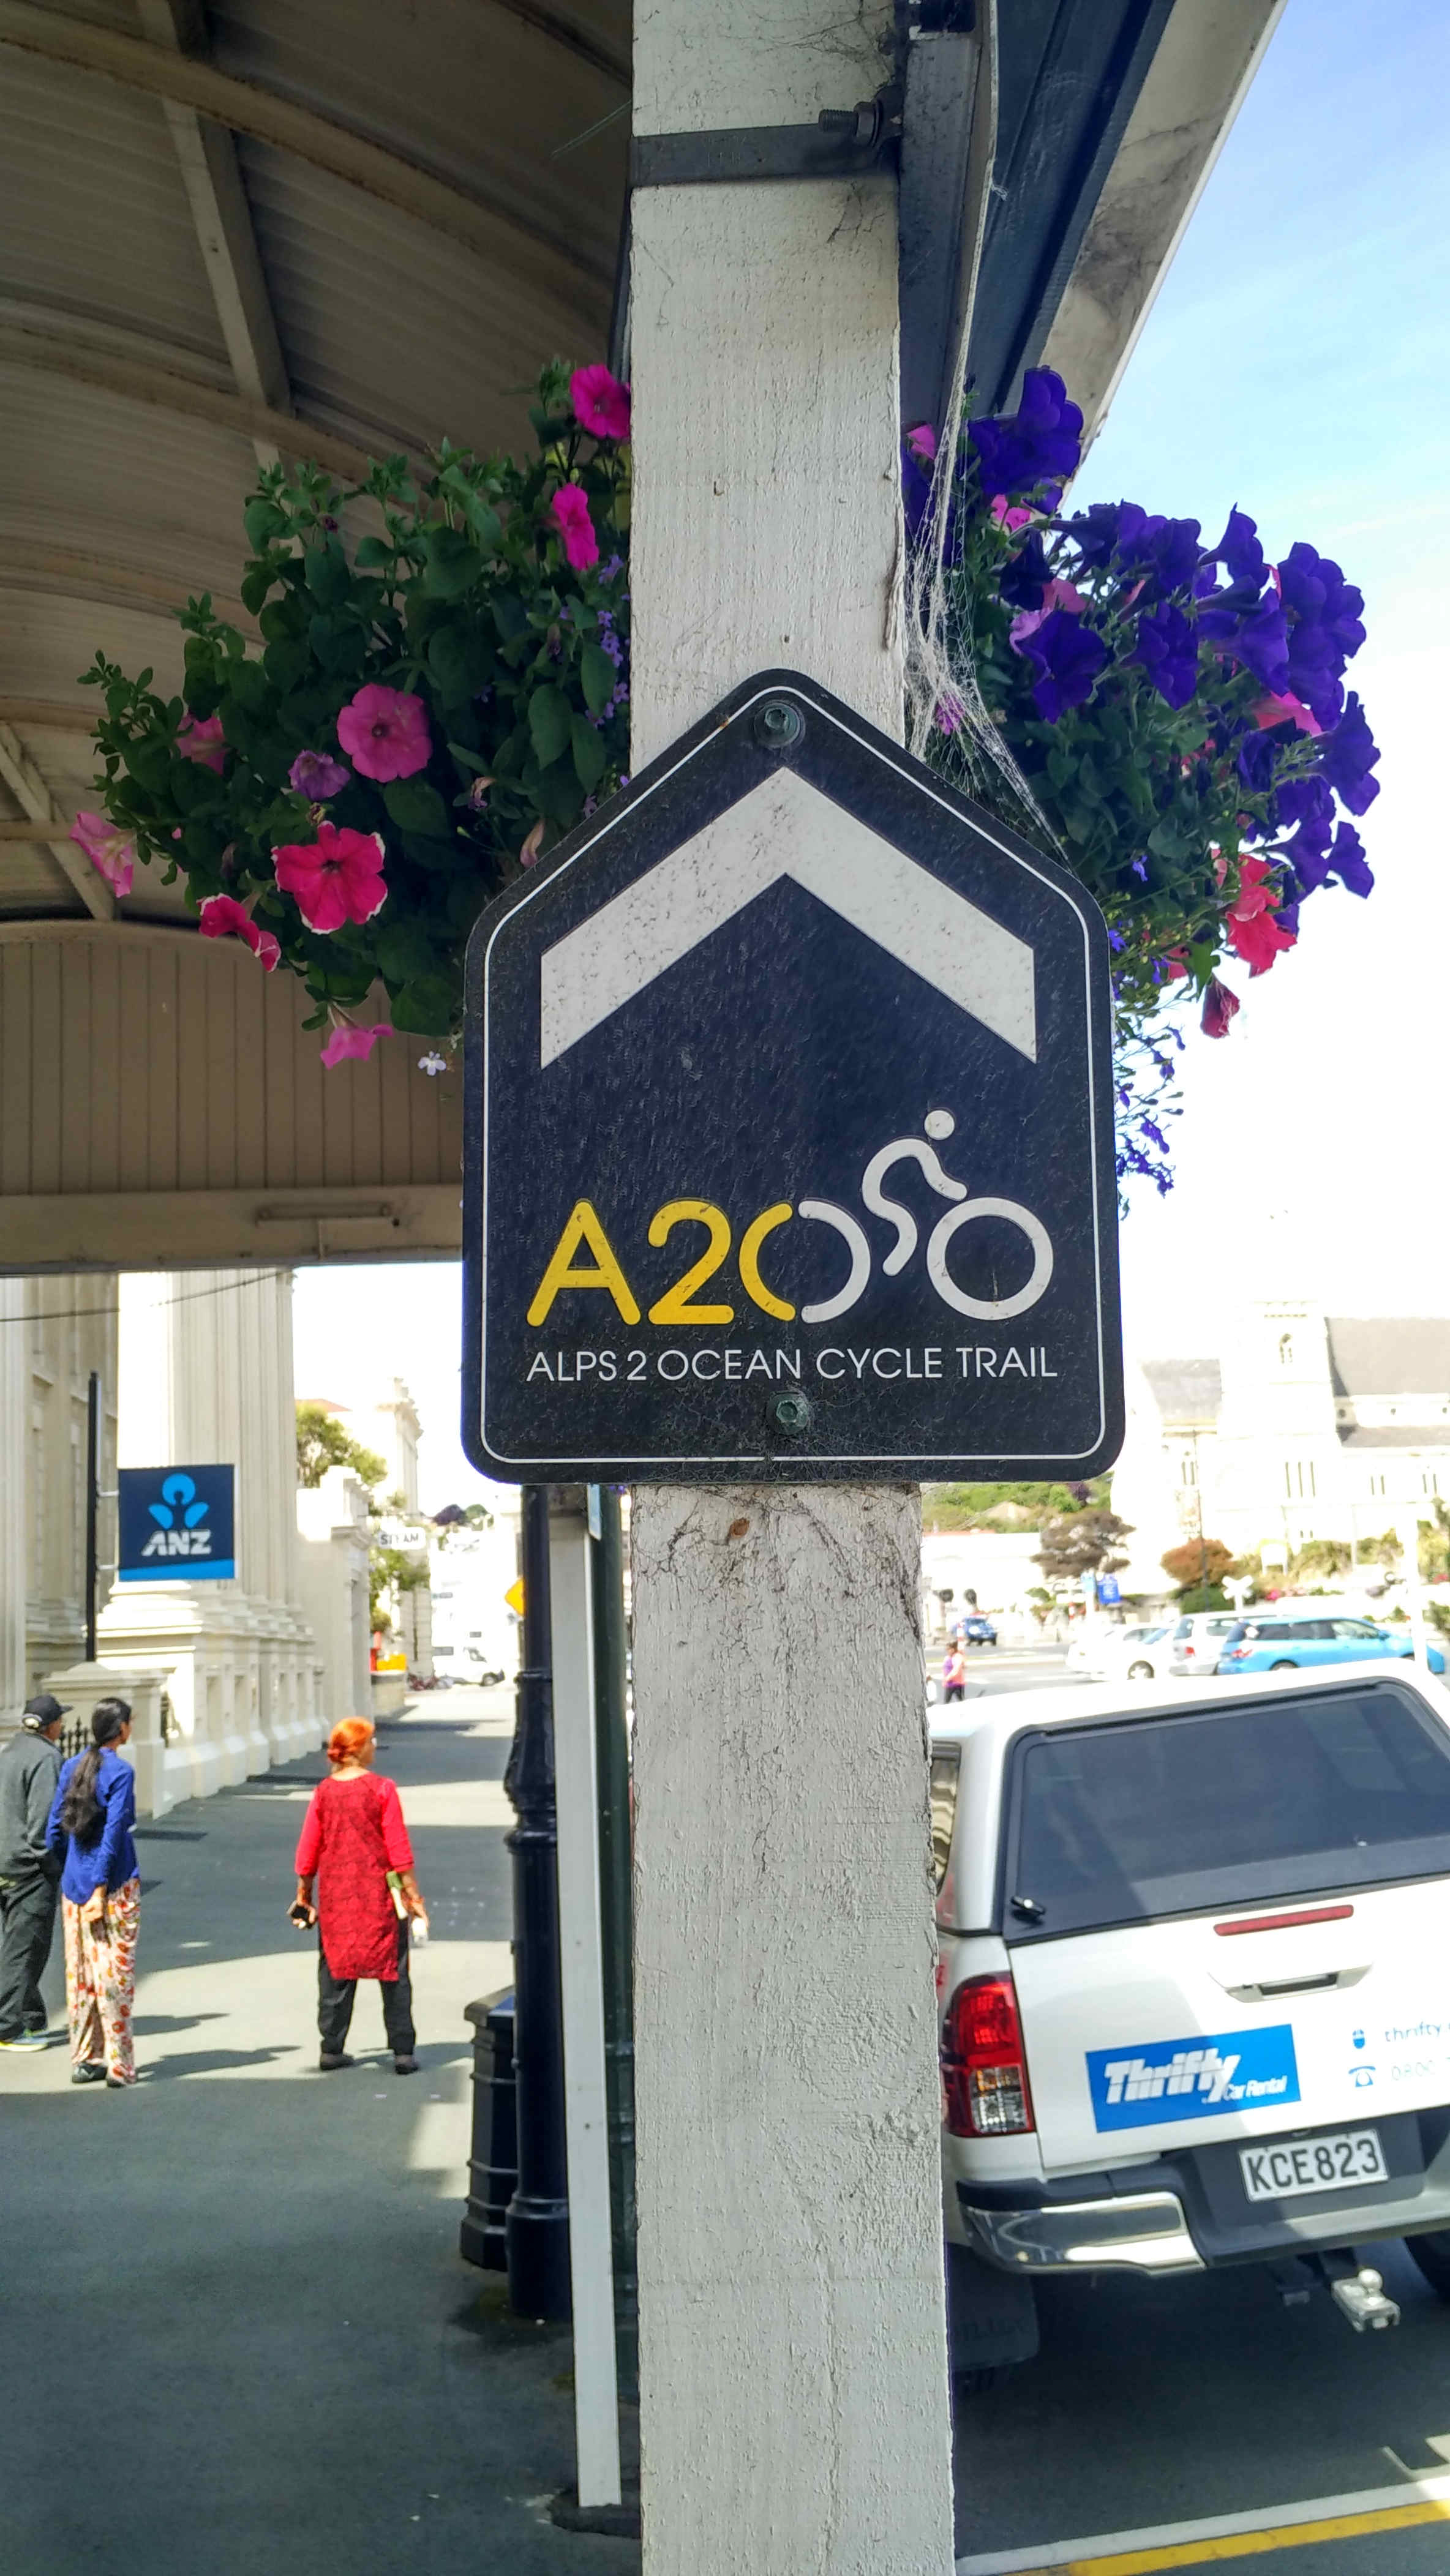 """Alps 2 Ocean Cycle Trail signs. From Mount Cook to Oamaru.  The organisers describe the trail as """"New Zealand in all its colour and beauty - from our highest mountains, past great lakes and rivers, and down to the ocean. Suitable for all ages, the 9 section bike trail is an easy to intermediate grade, linking the Southern Alps to the Pacific Ocean. Allow 4-6 days for the entire ride, or simply try a day excursion. Whichever option you choose, the A2O Cycle Trail is sure to be a memorable experience""""."""